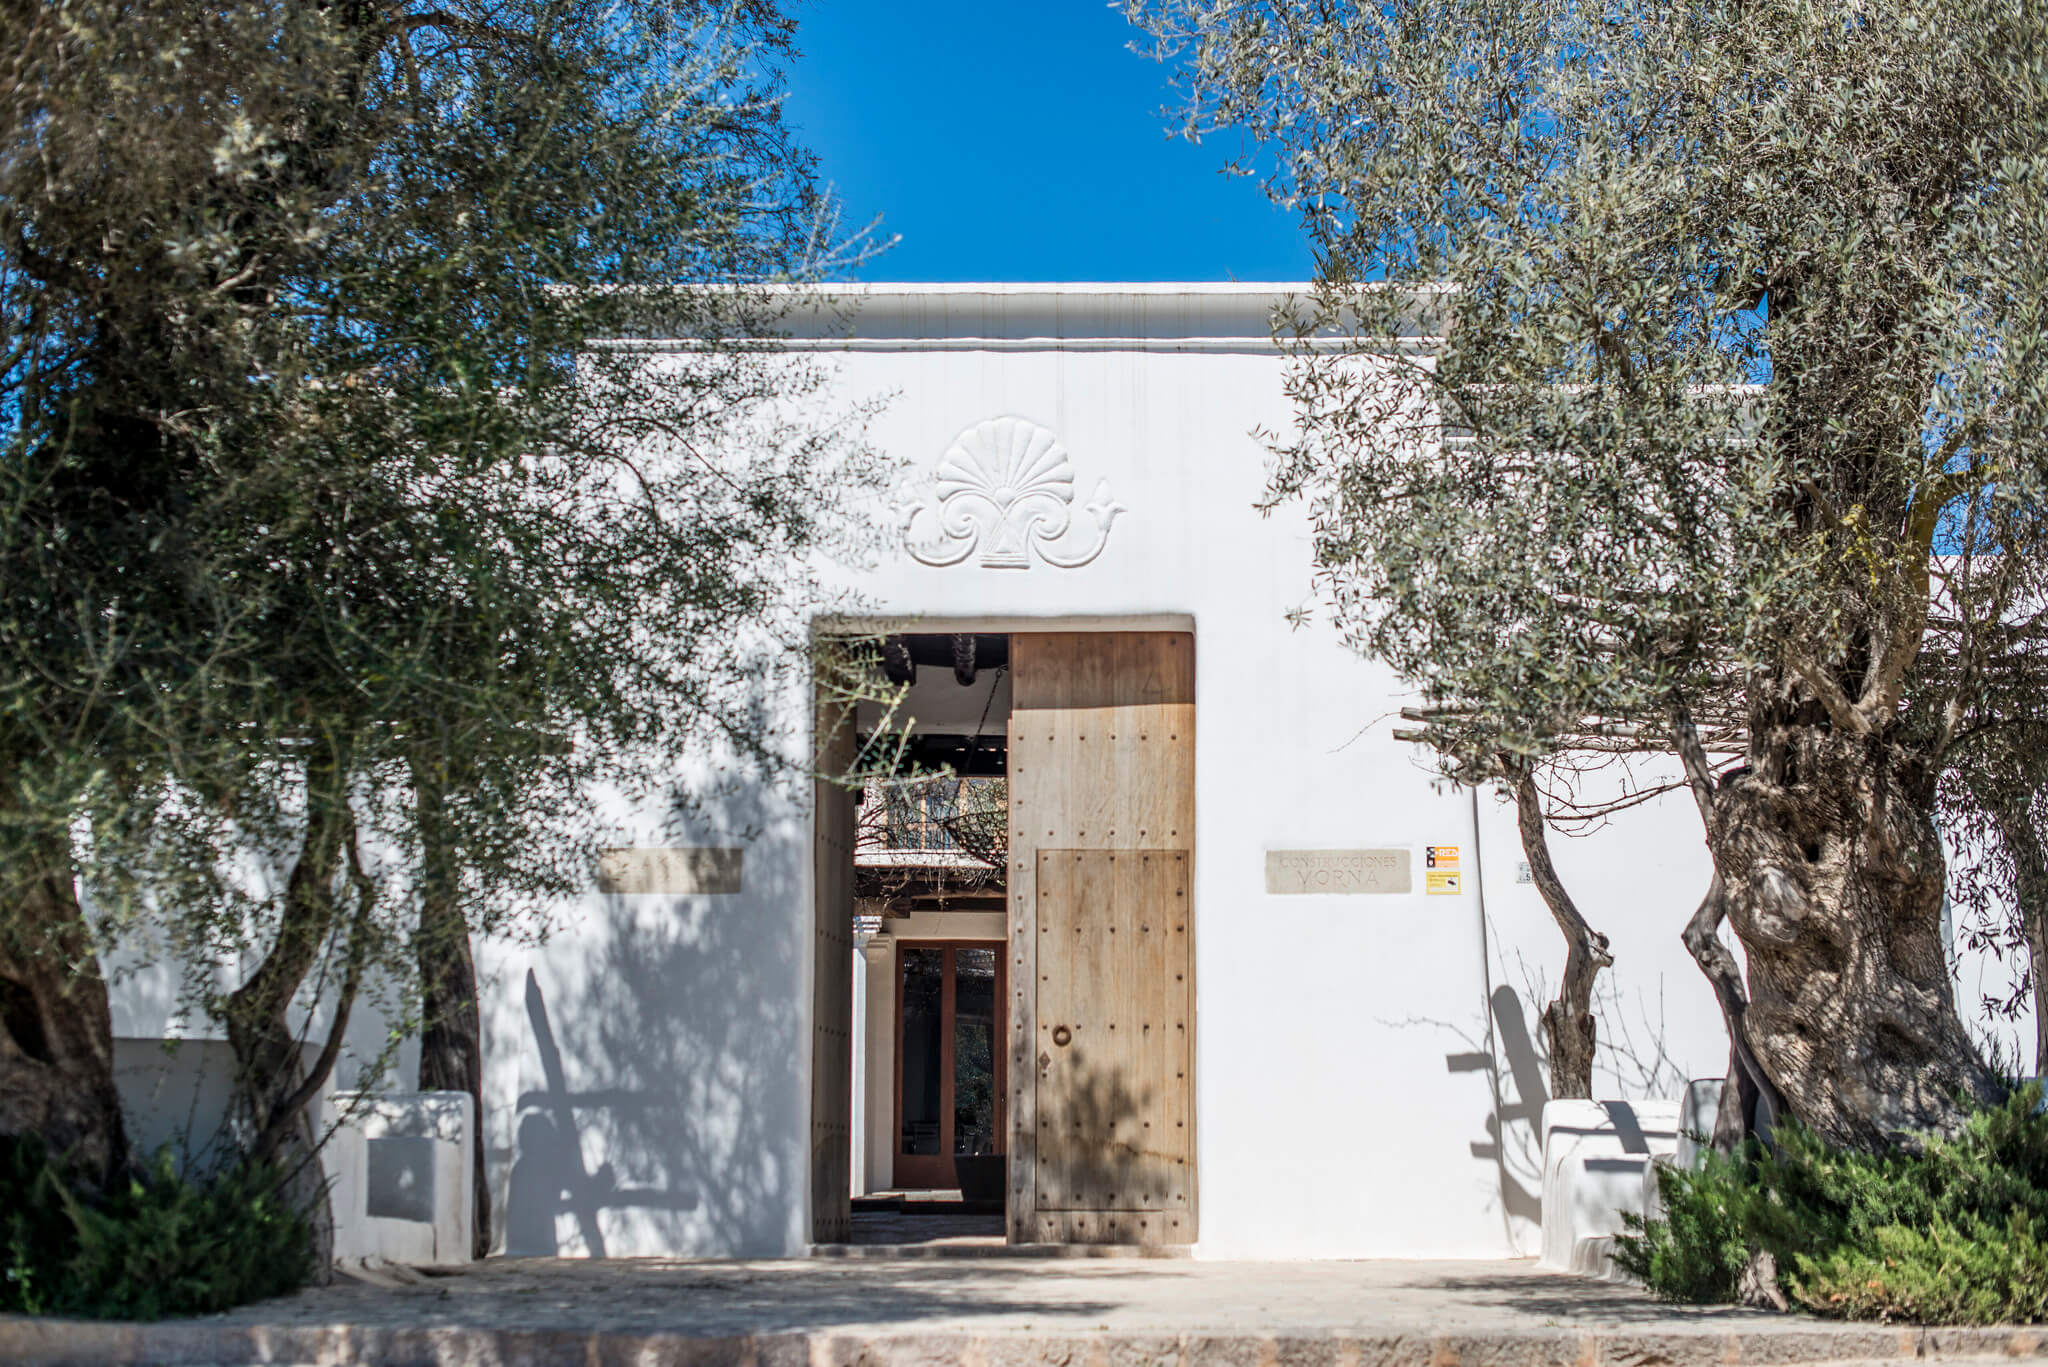 https://www.white-ibiza.com/wp-content/uploads/2020/03/ibiza-architects-blakstad-design-consultants-2020-01.jpg